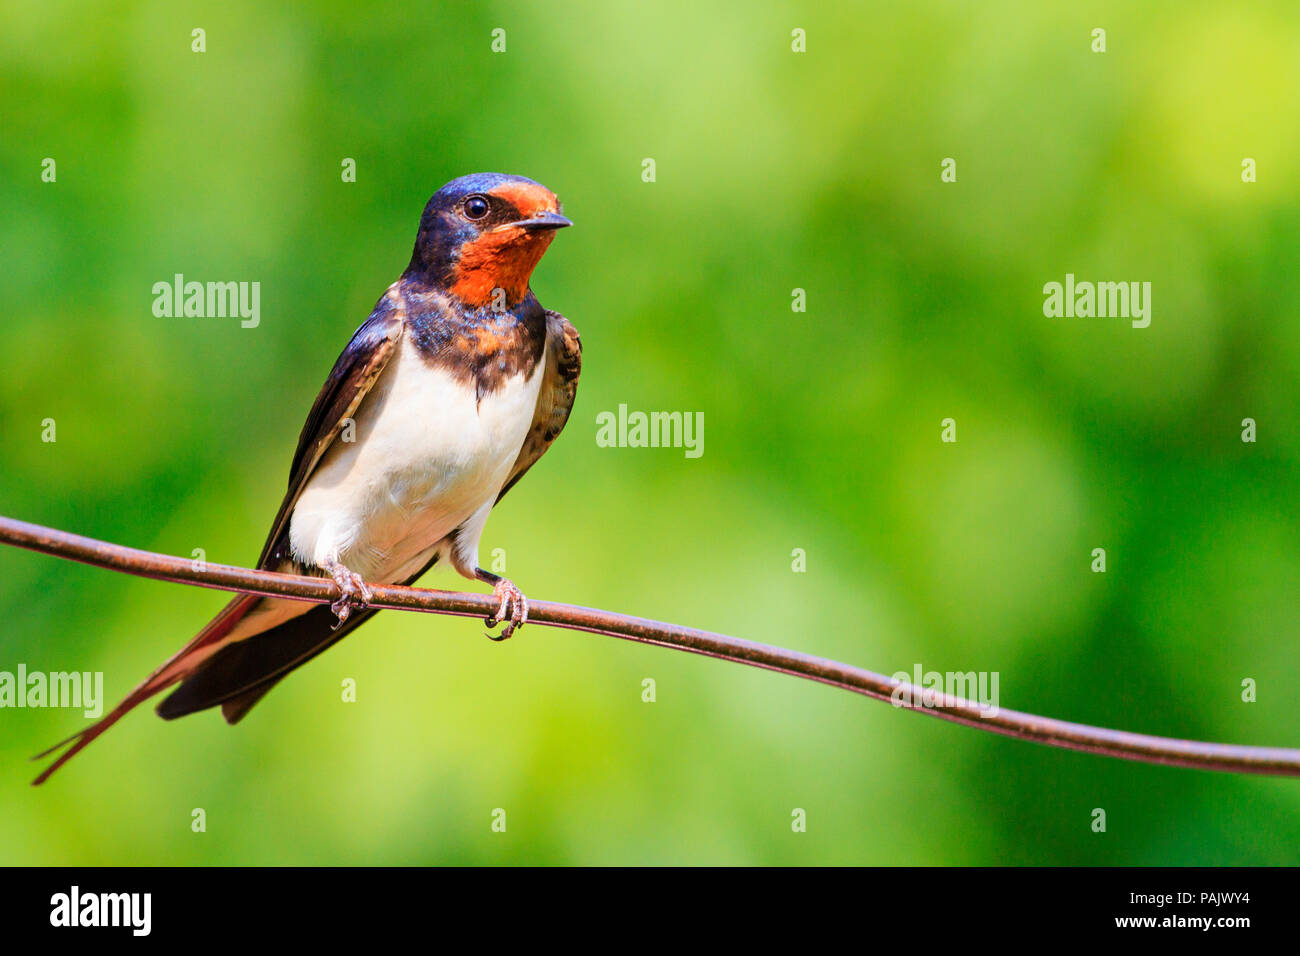 barn swallow is sitting on the wire - Stock Image